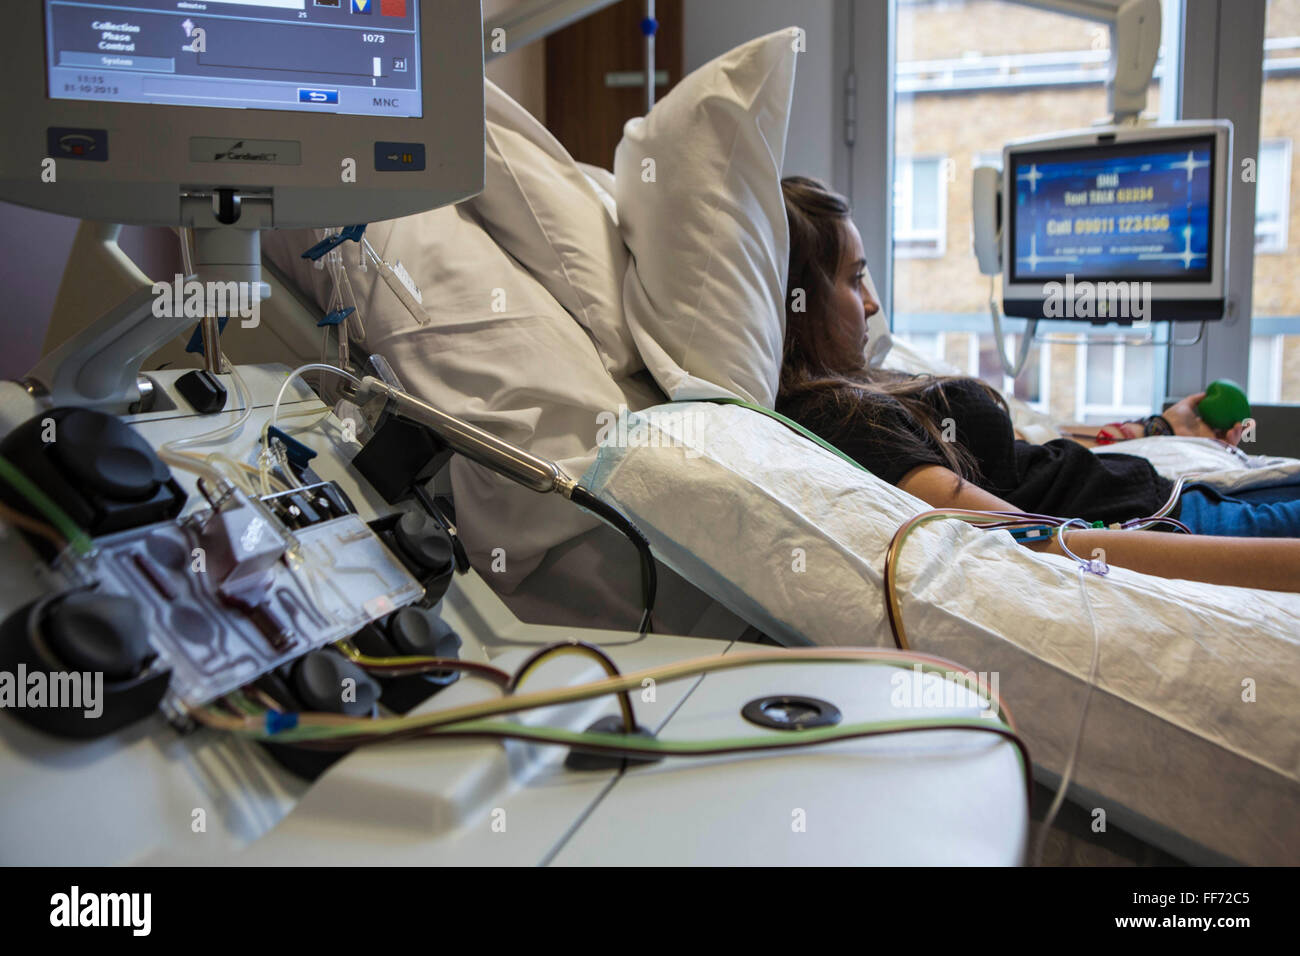 A young female hospital patient lies bed while attached to a medical transfusion device in the London clinic, London, - Stock Image